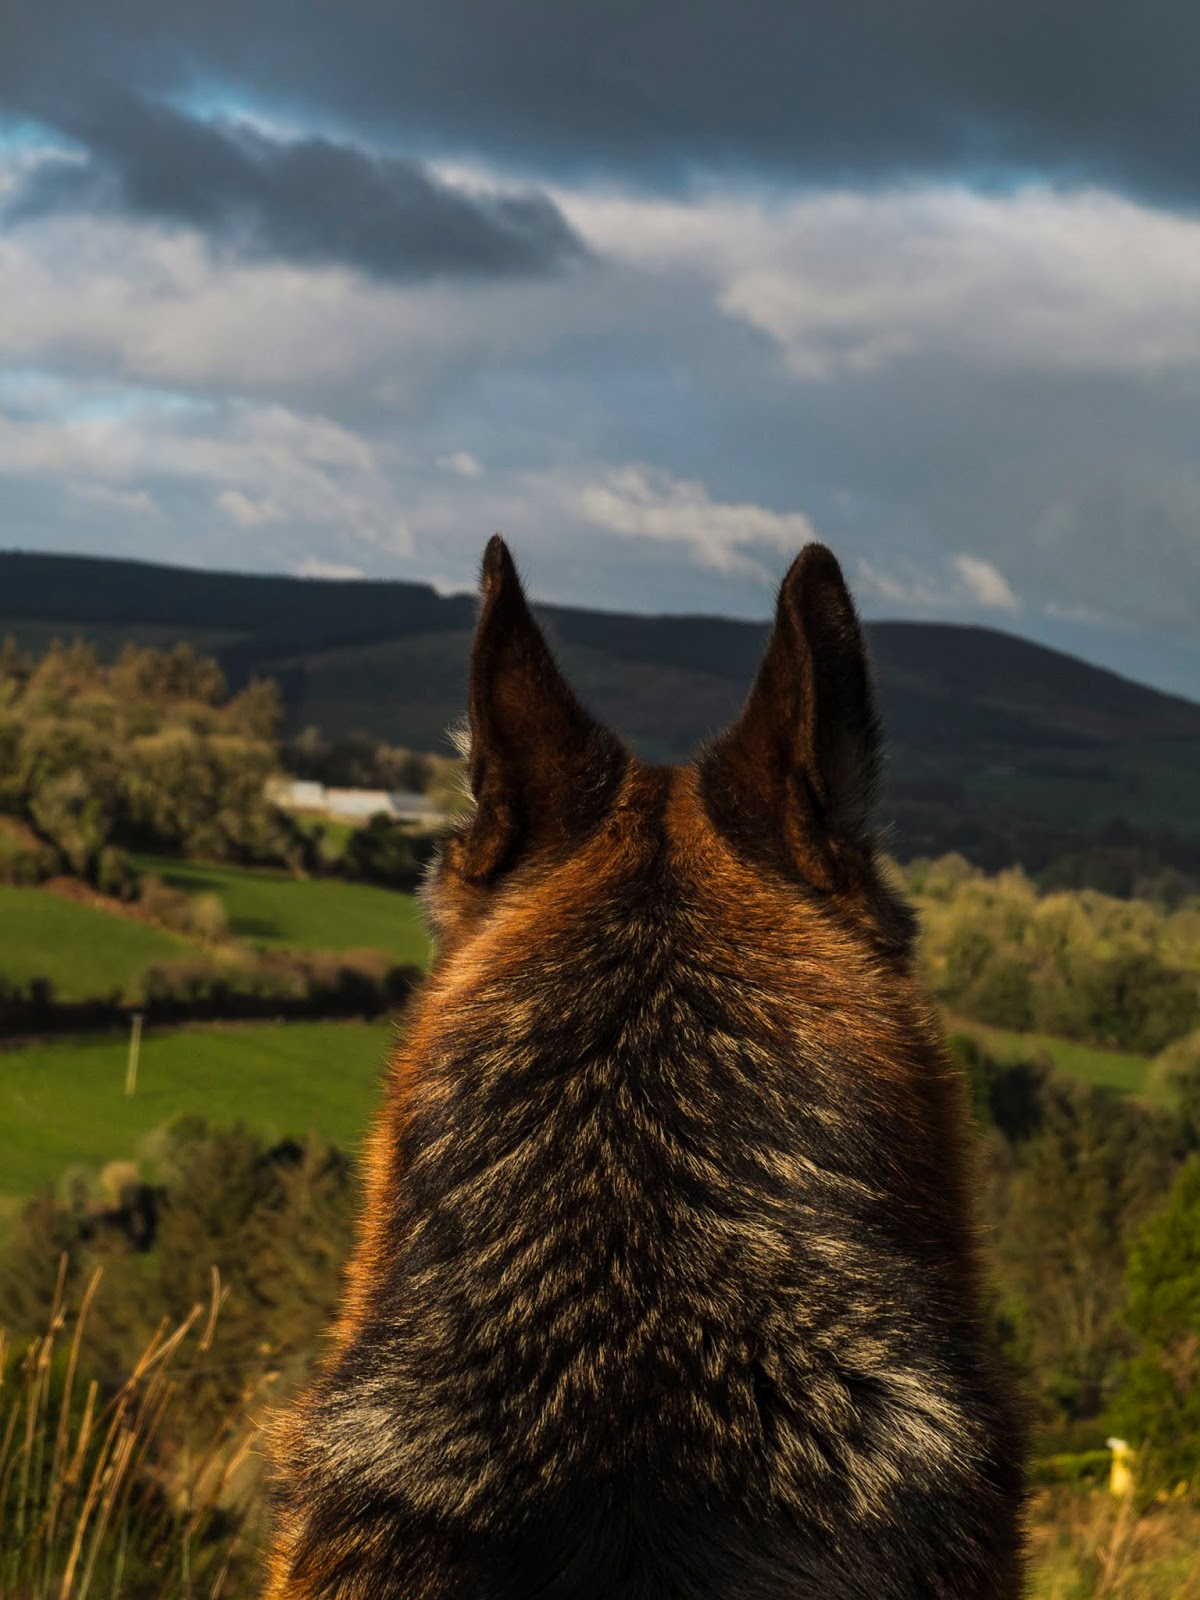 The back of a German Shepherd's head sitting on a hillside and looking down the valley.